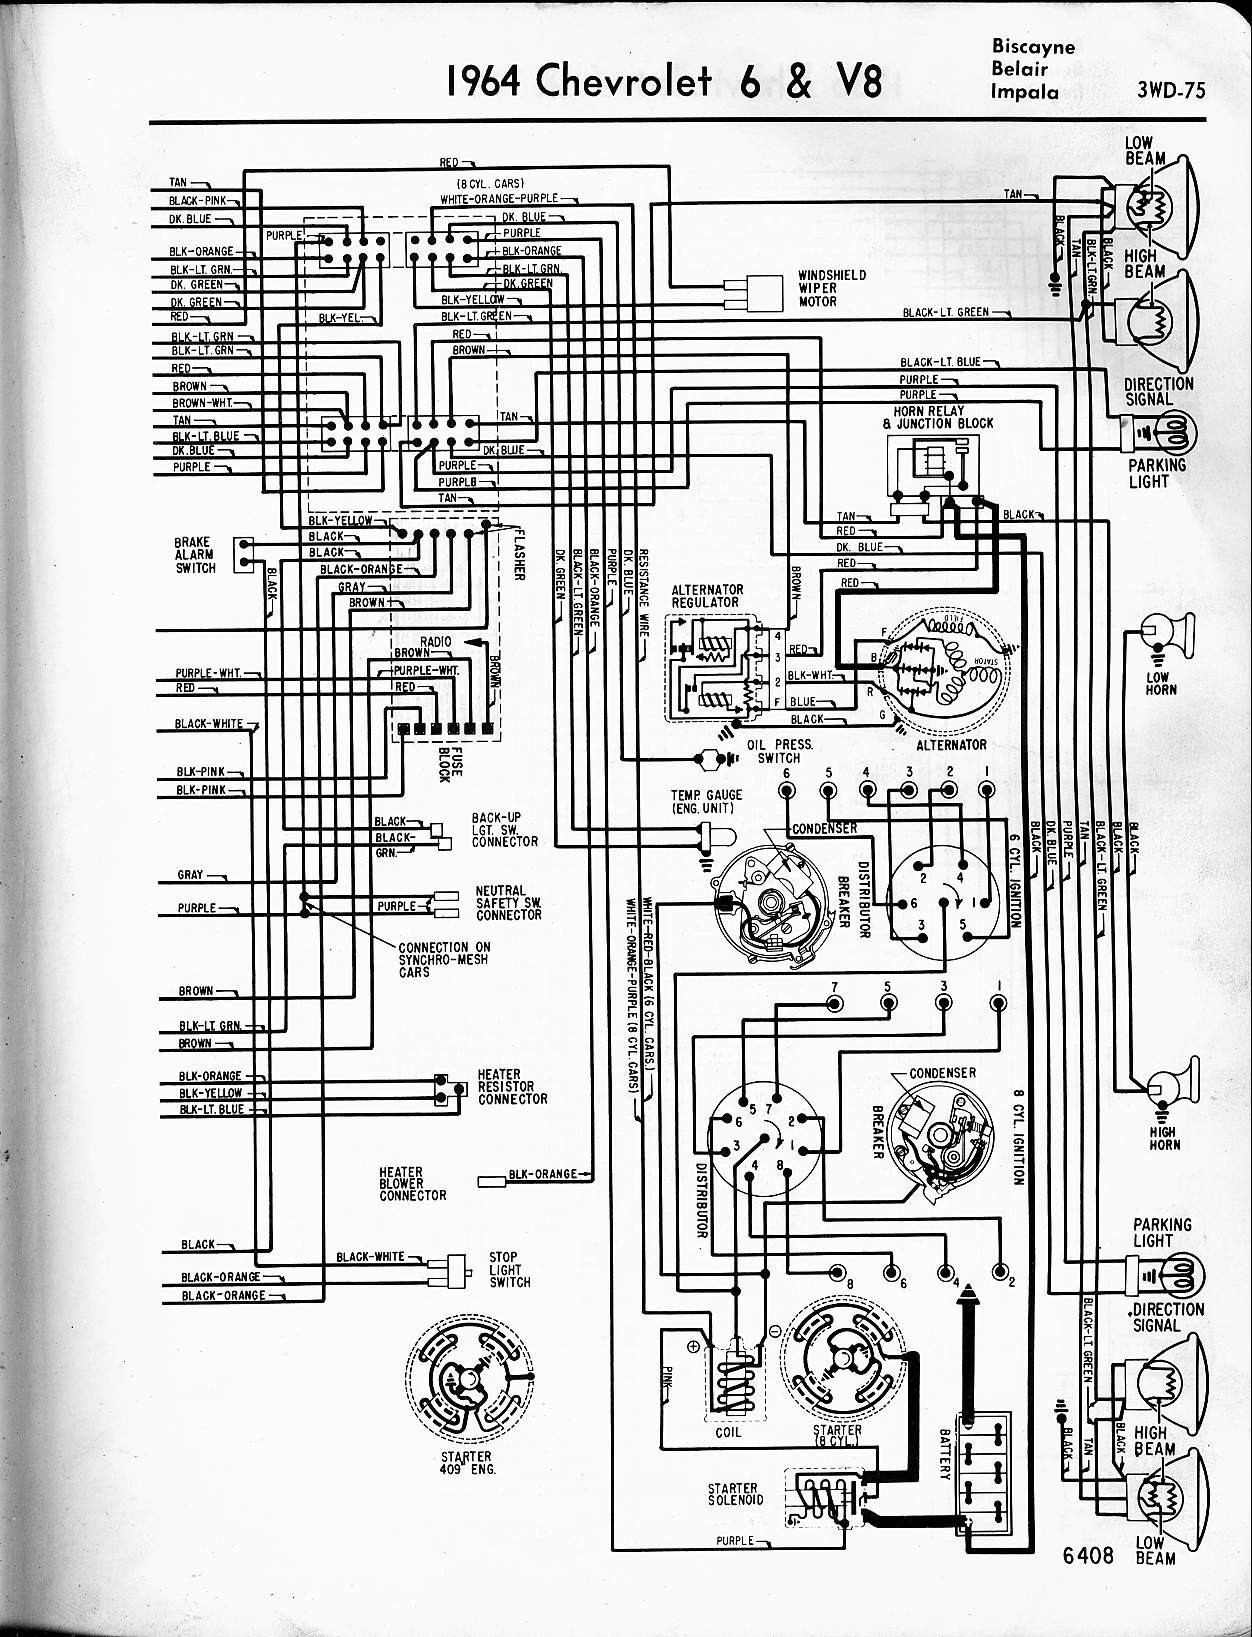 Fuse Box Diagram For 1970 Impala